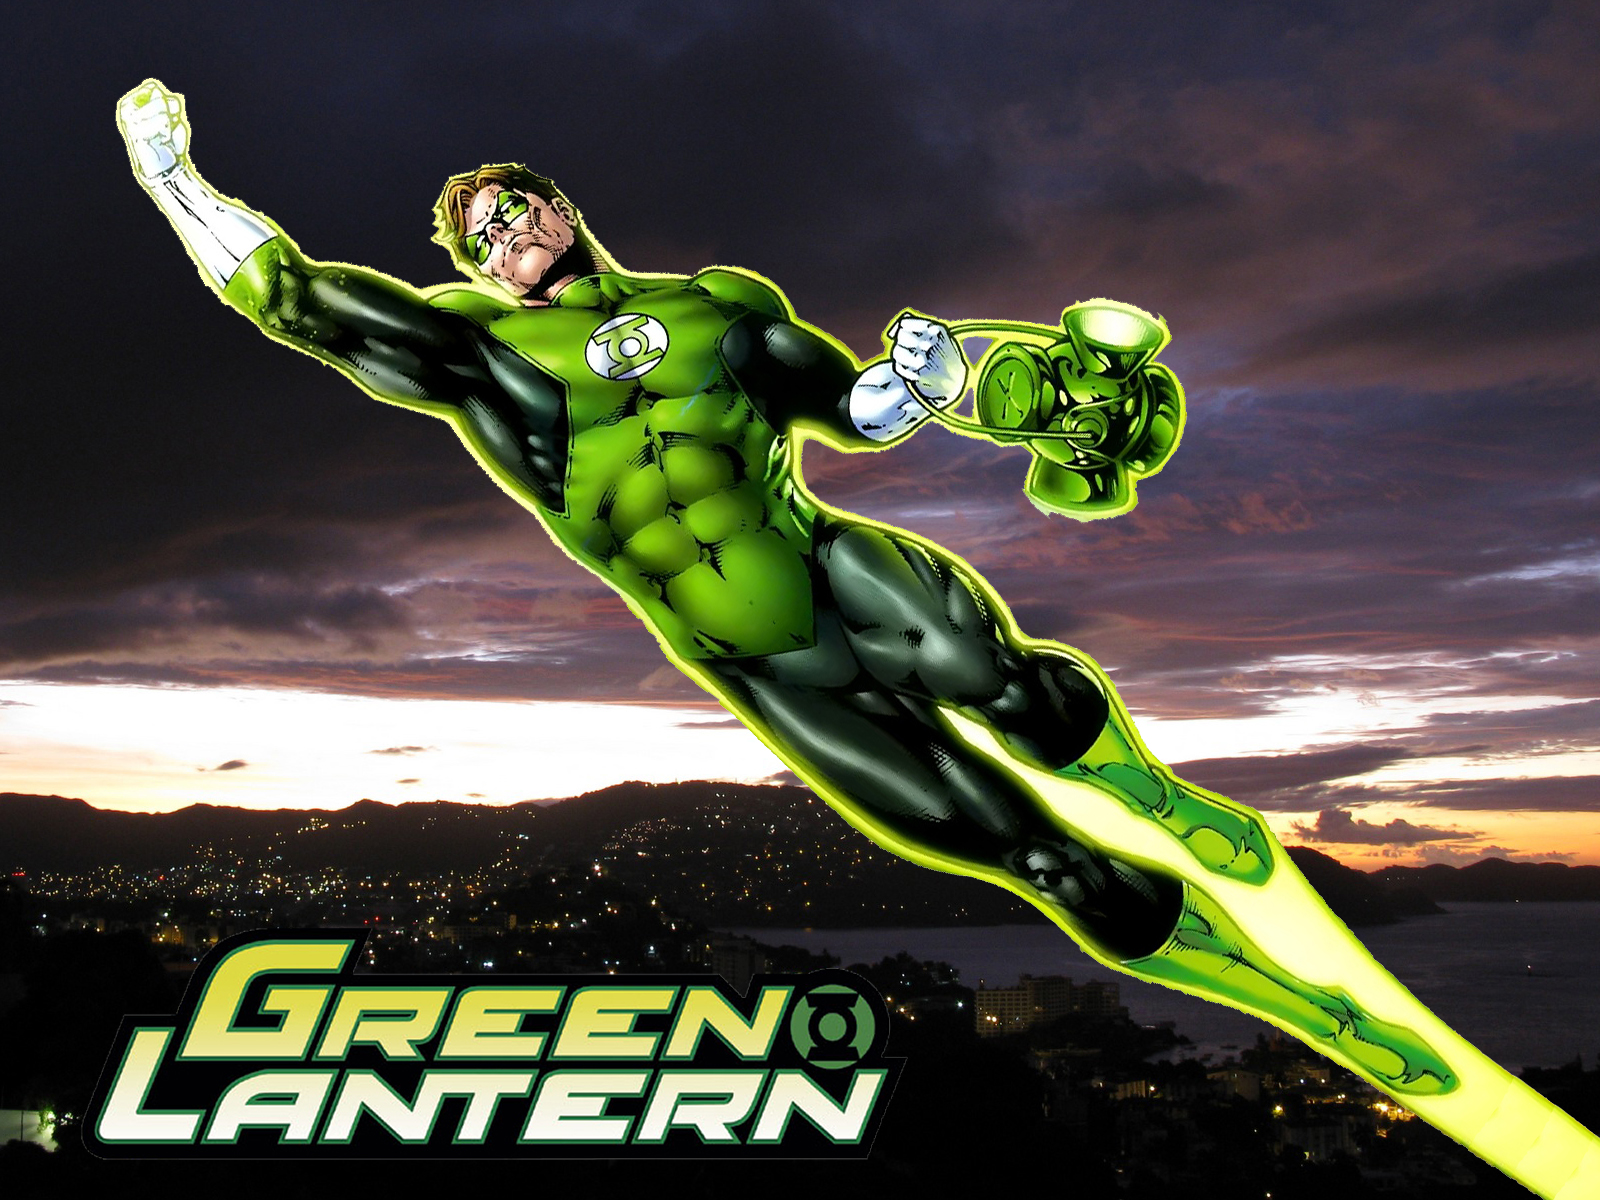 Anime Heroes Wallpaper Green Lantern Hd Logo And Wallpapers Cartoon Wallpapers